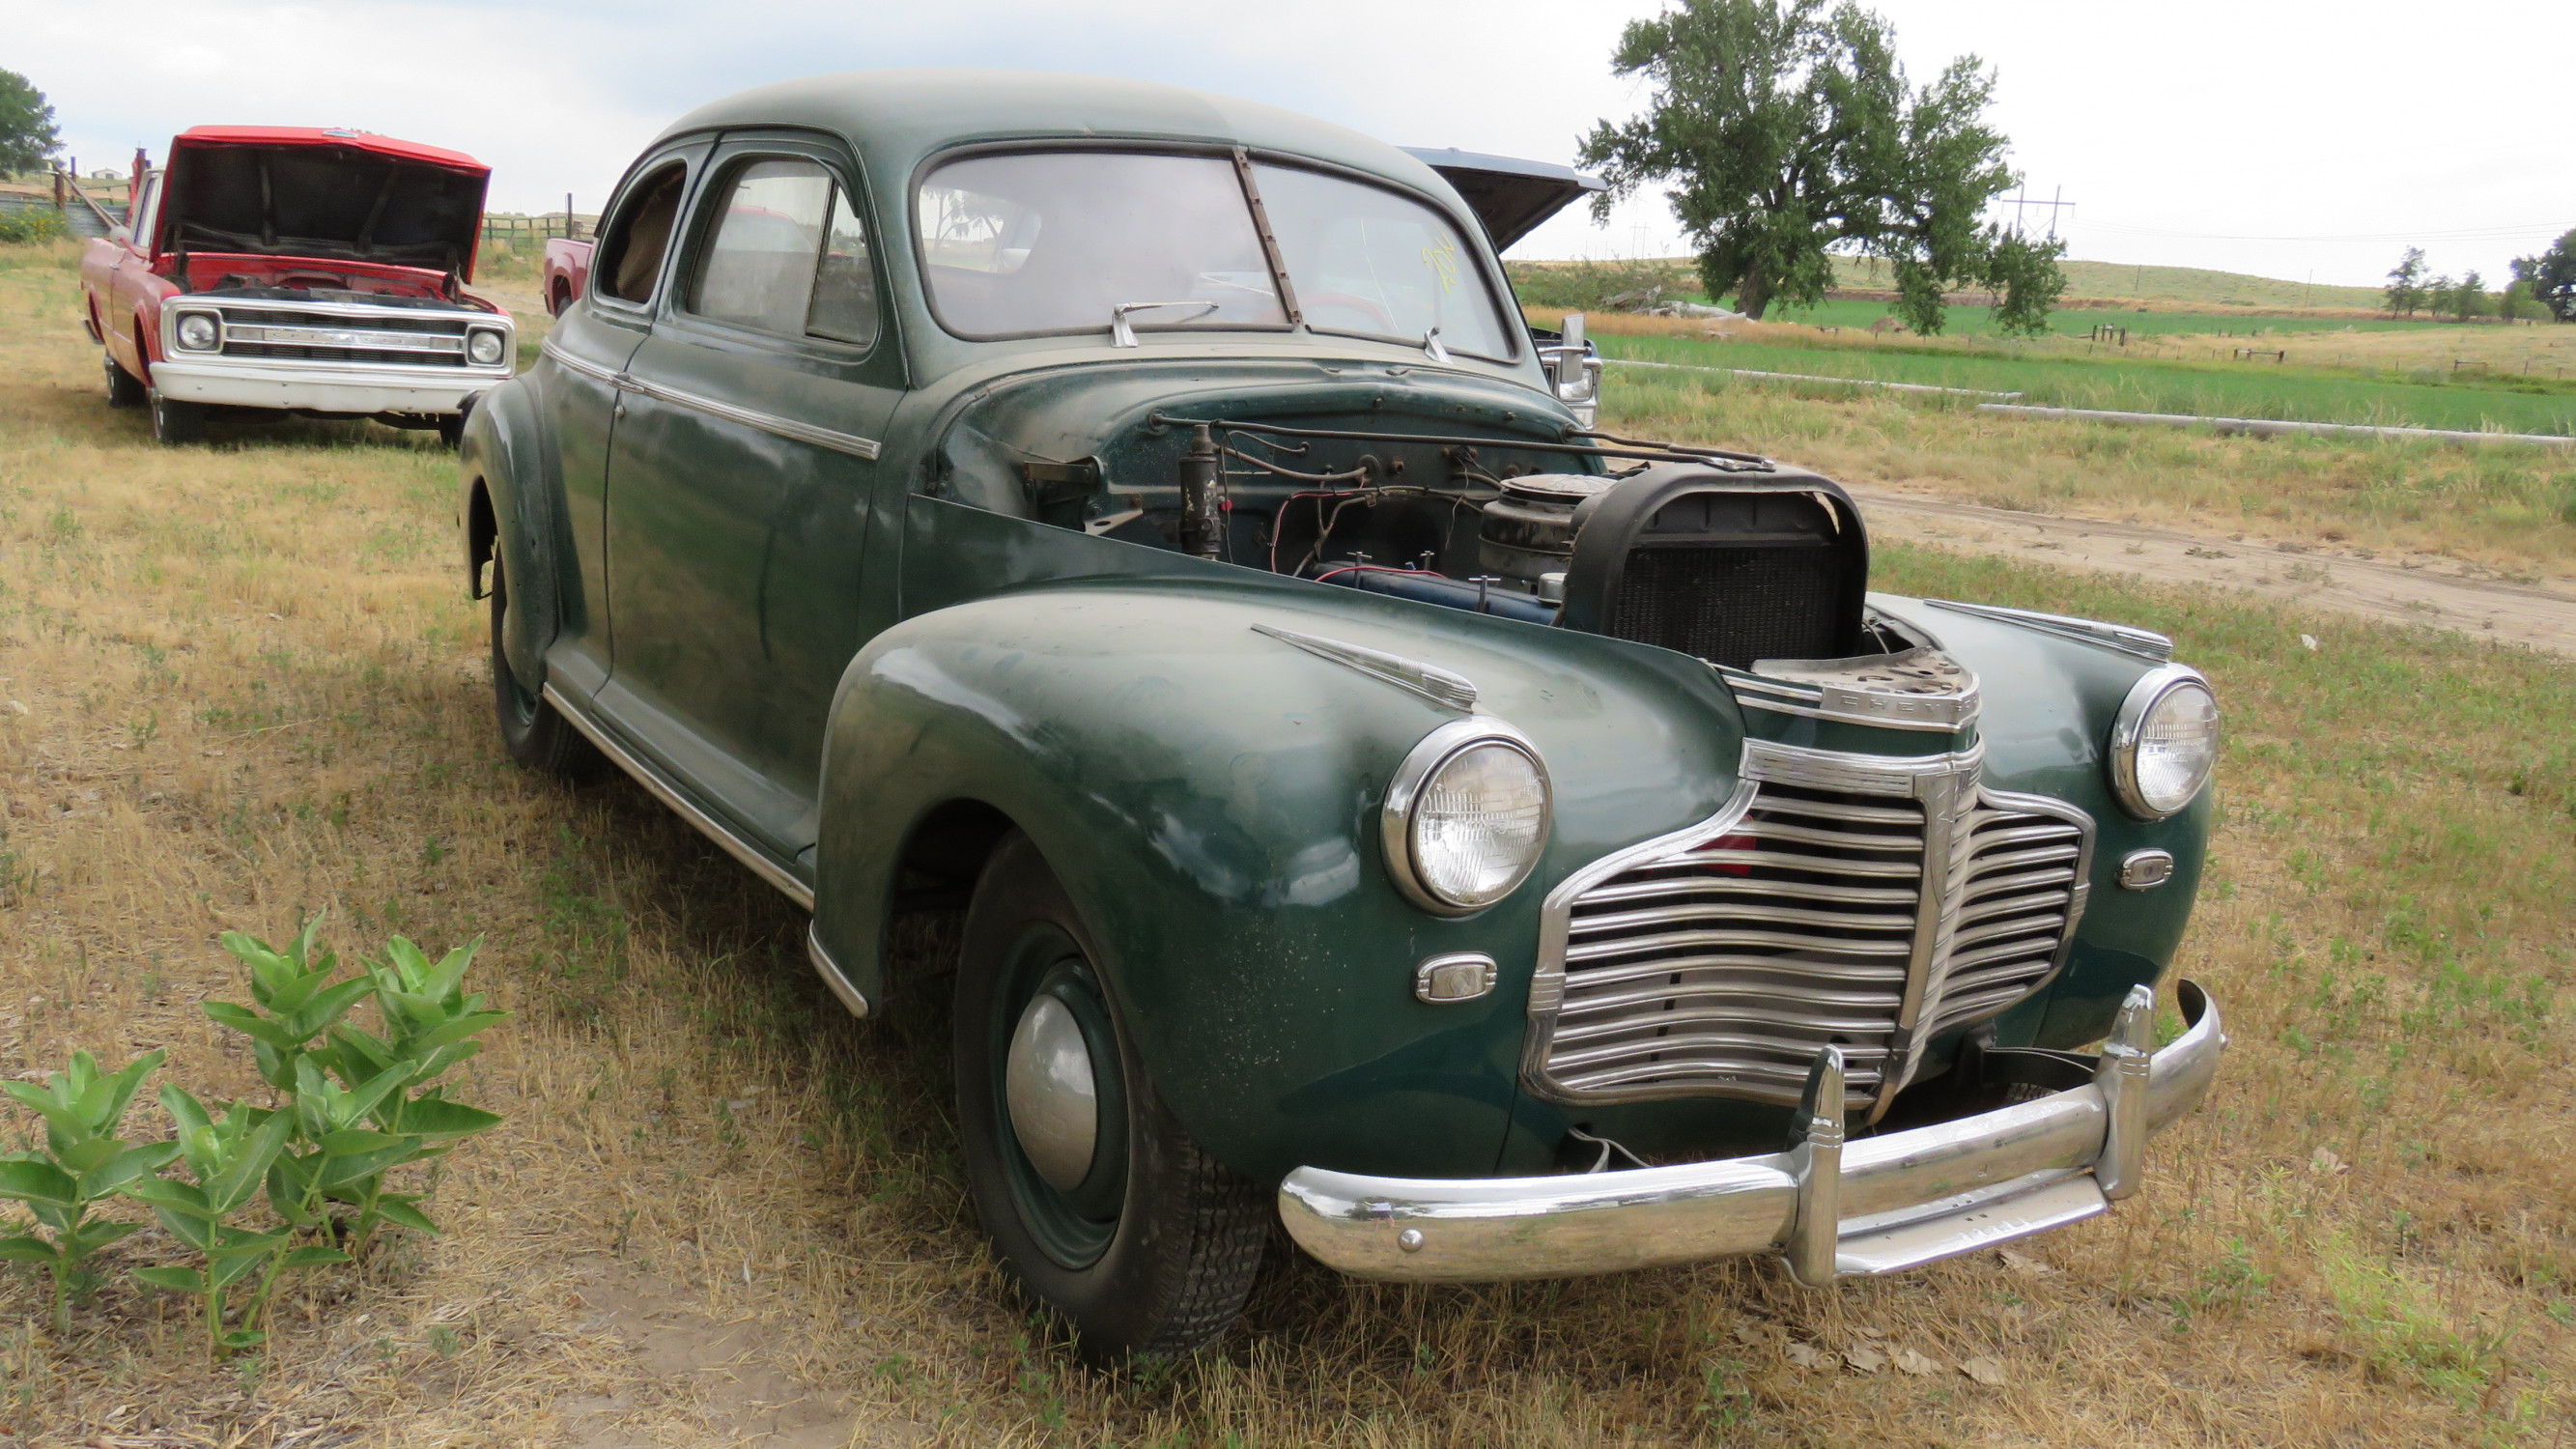 1941 CHEVROLET COUPE - Image 1